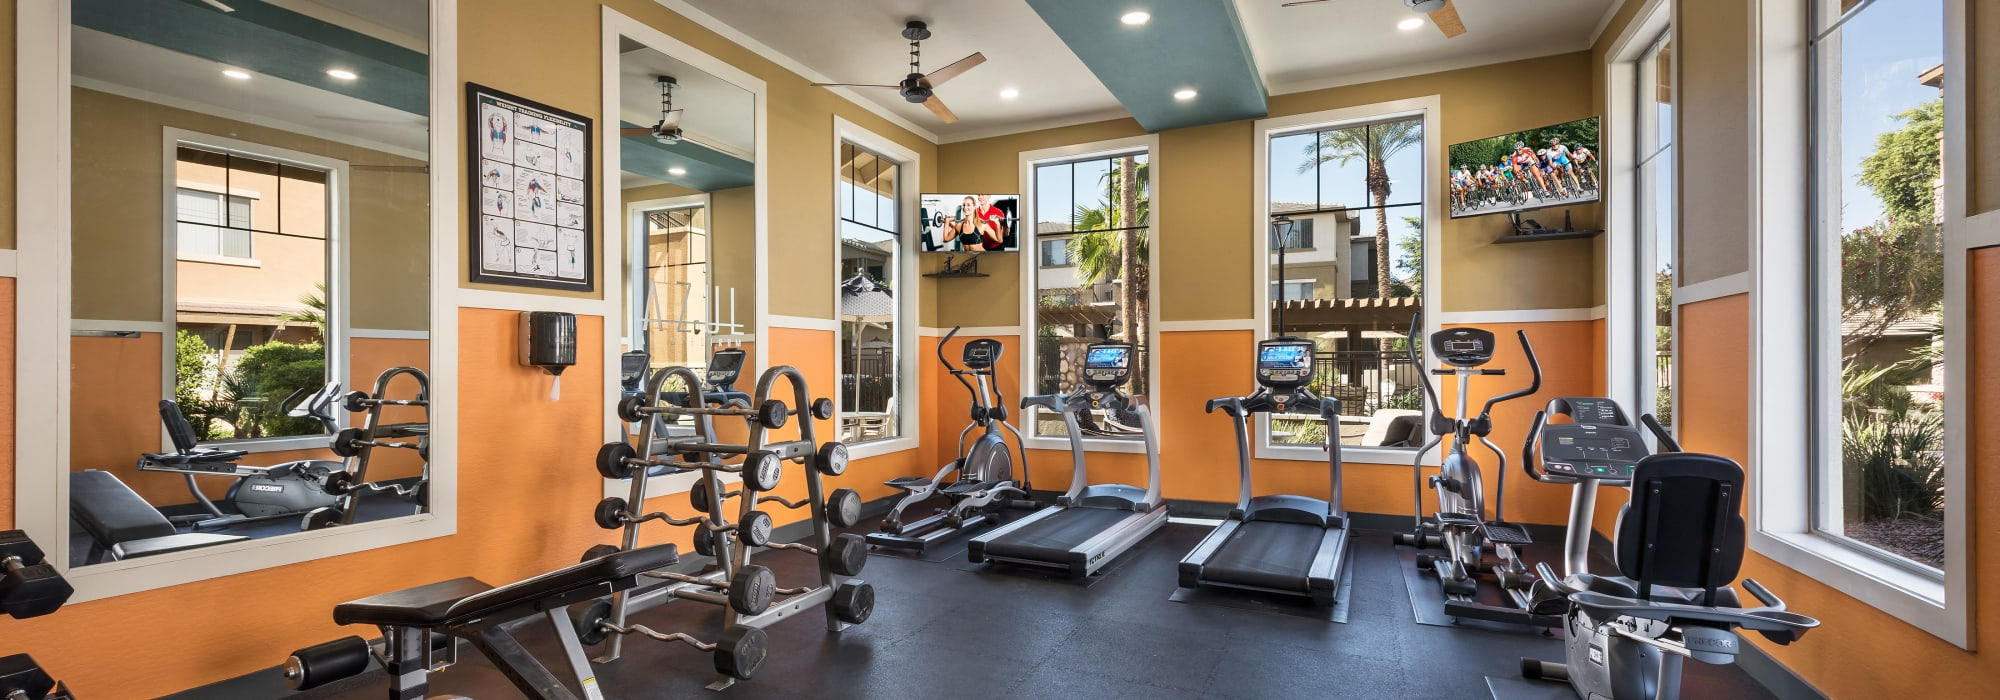 Apartments with a luxury fitness center at Azul at Spectrum in Gilbert, Arizona